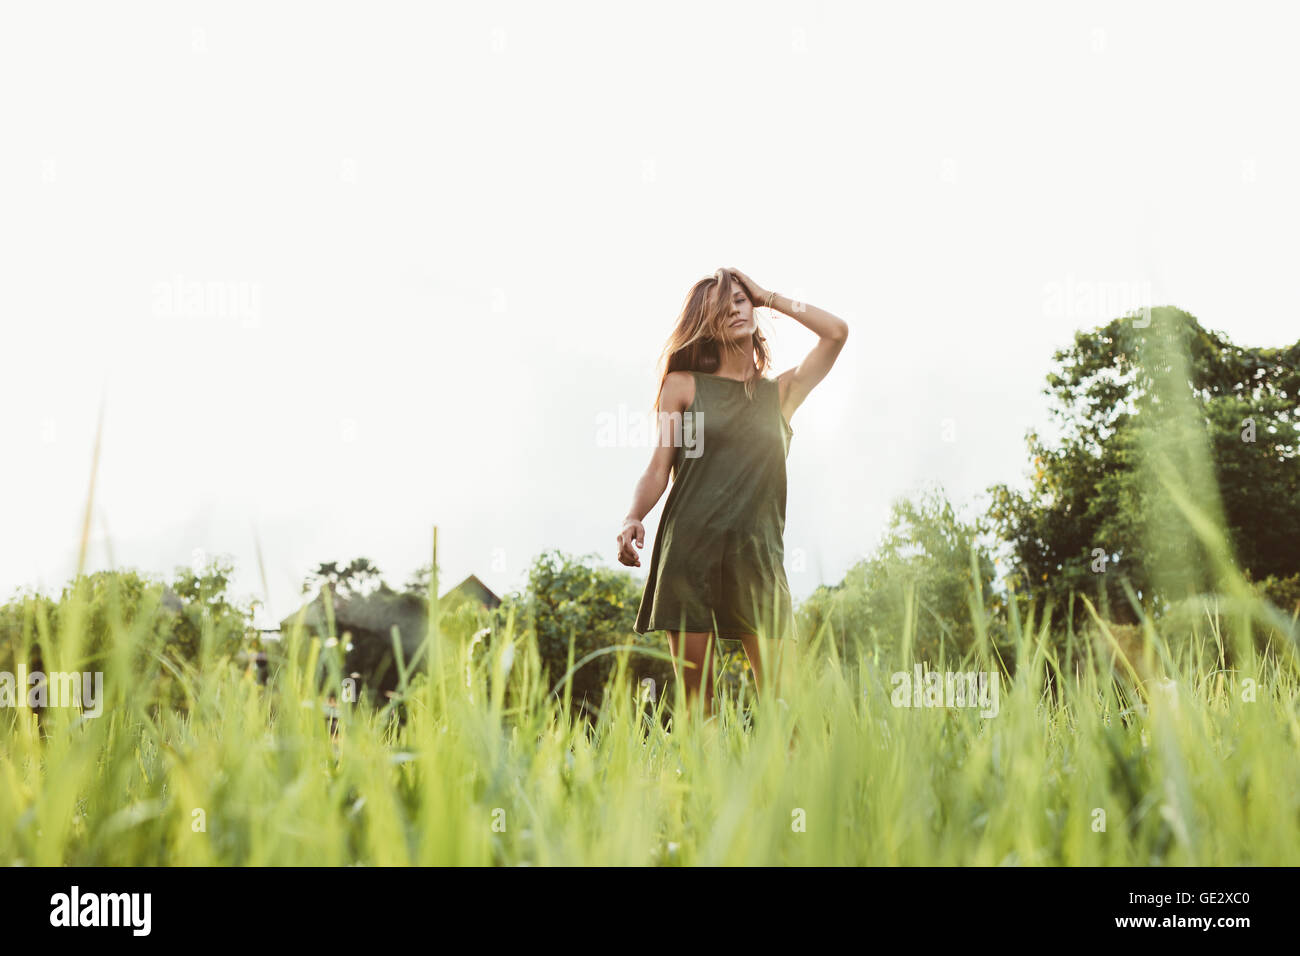 Portrait of beautiful young woman standing outdoors. Female fashion model posing outdoors. - Stock Image